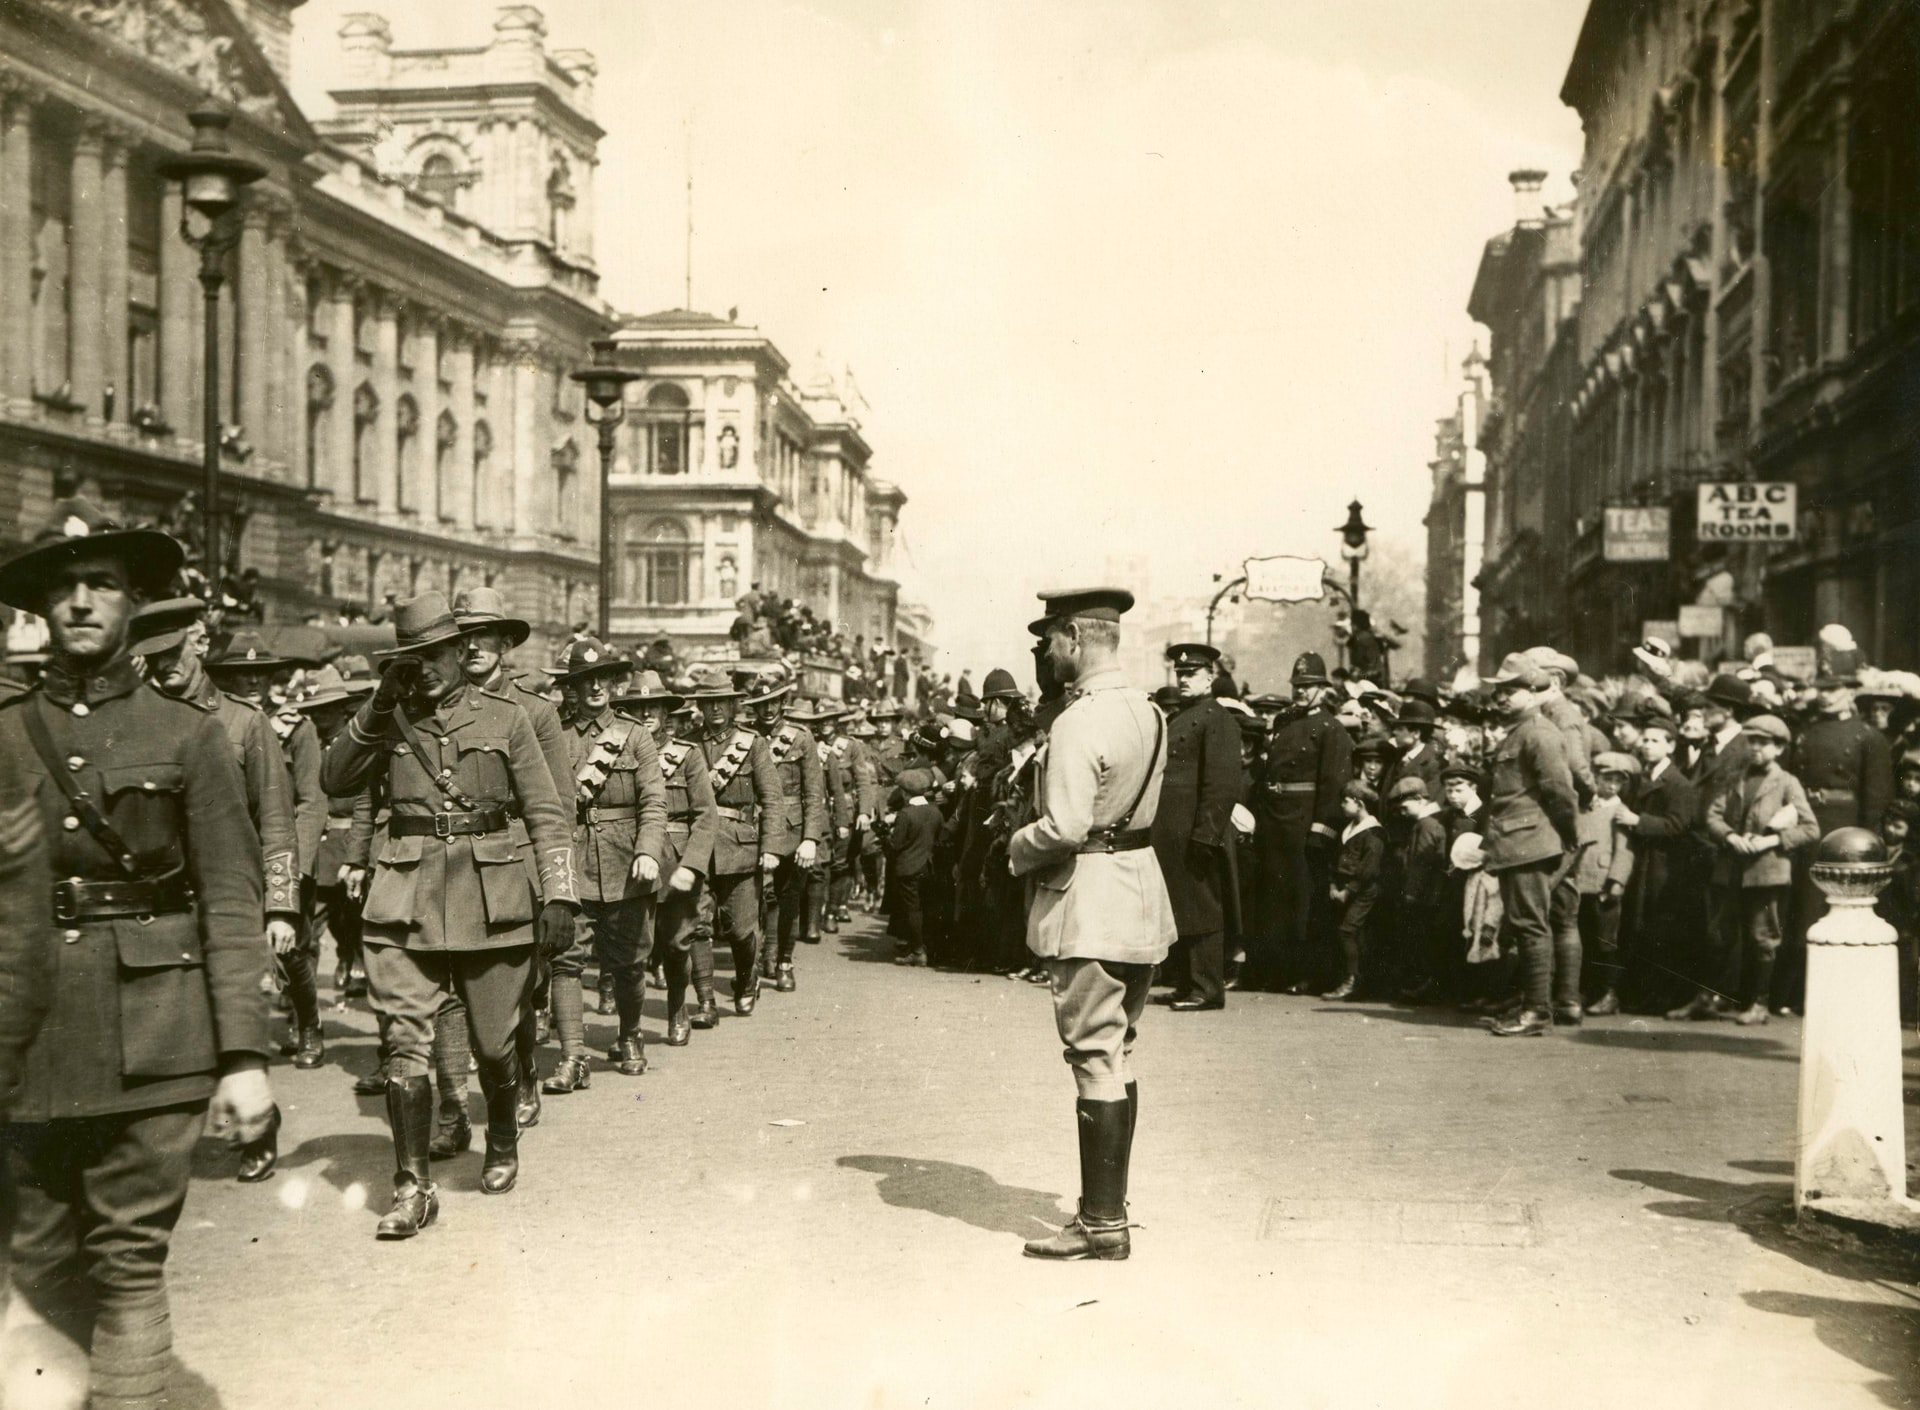 Anzac Day UK 1919 - heroic men